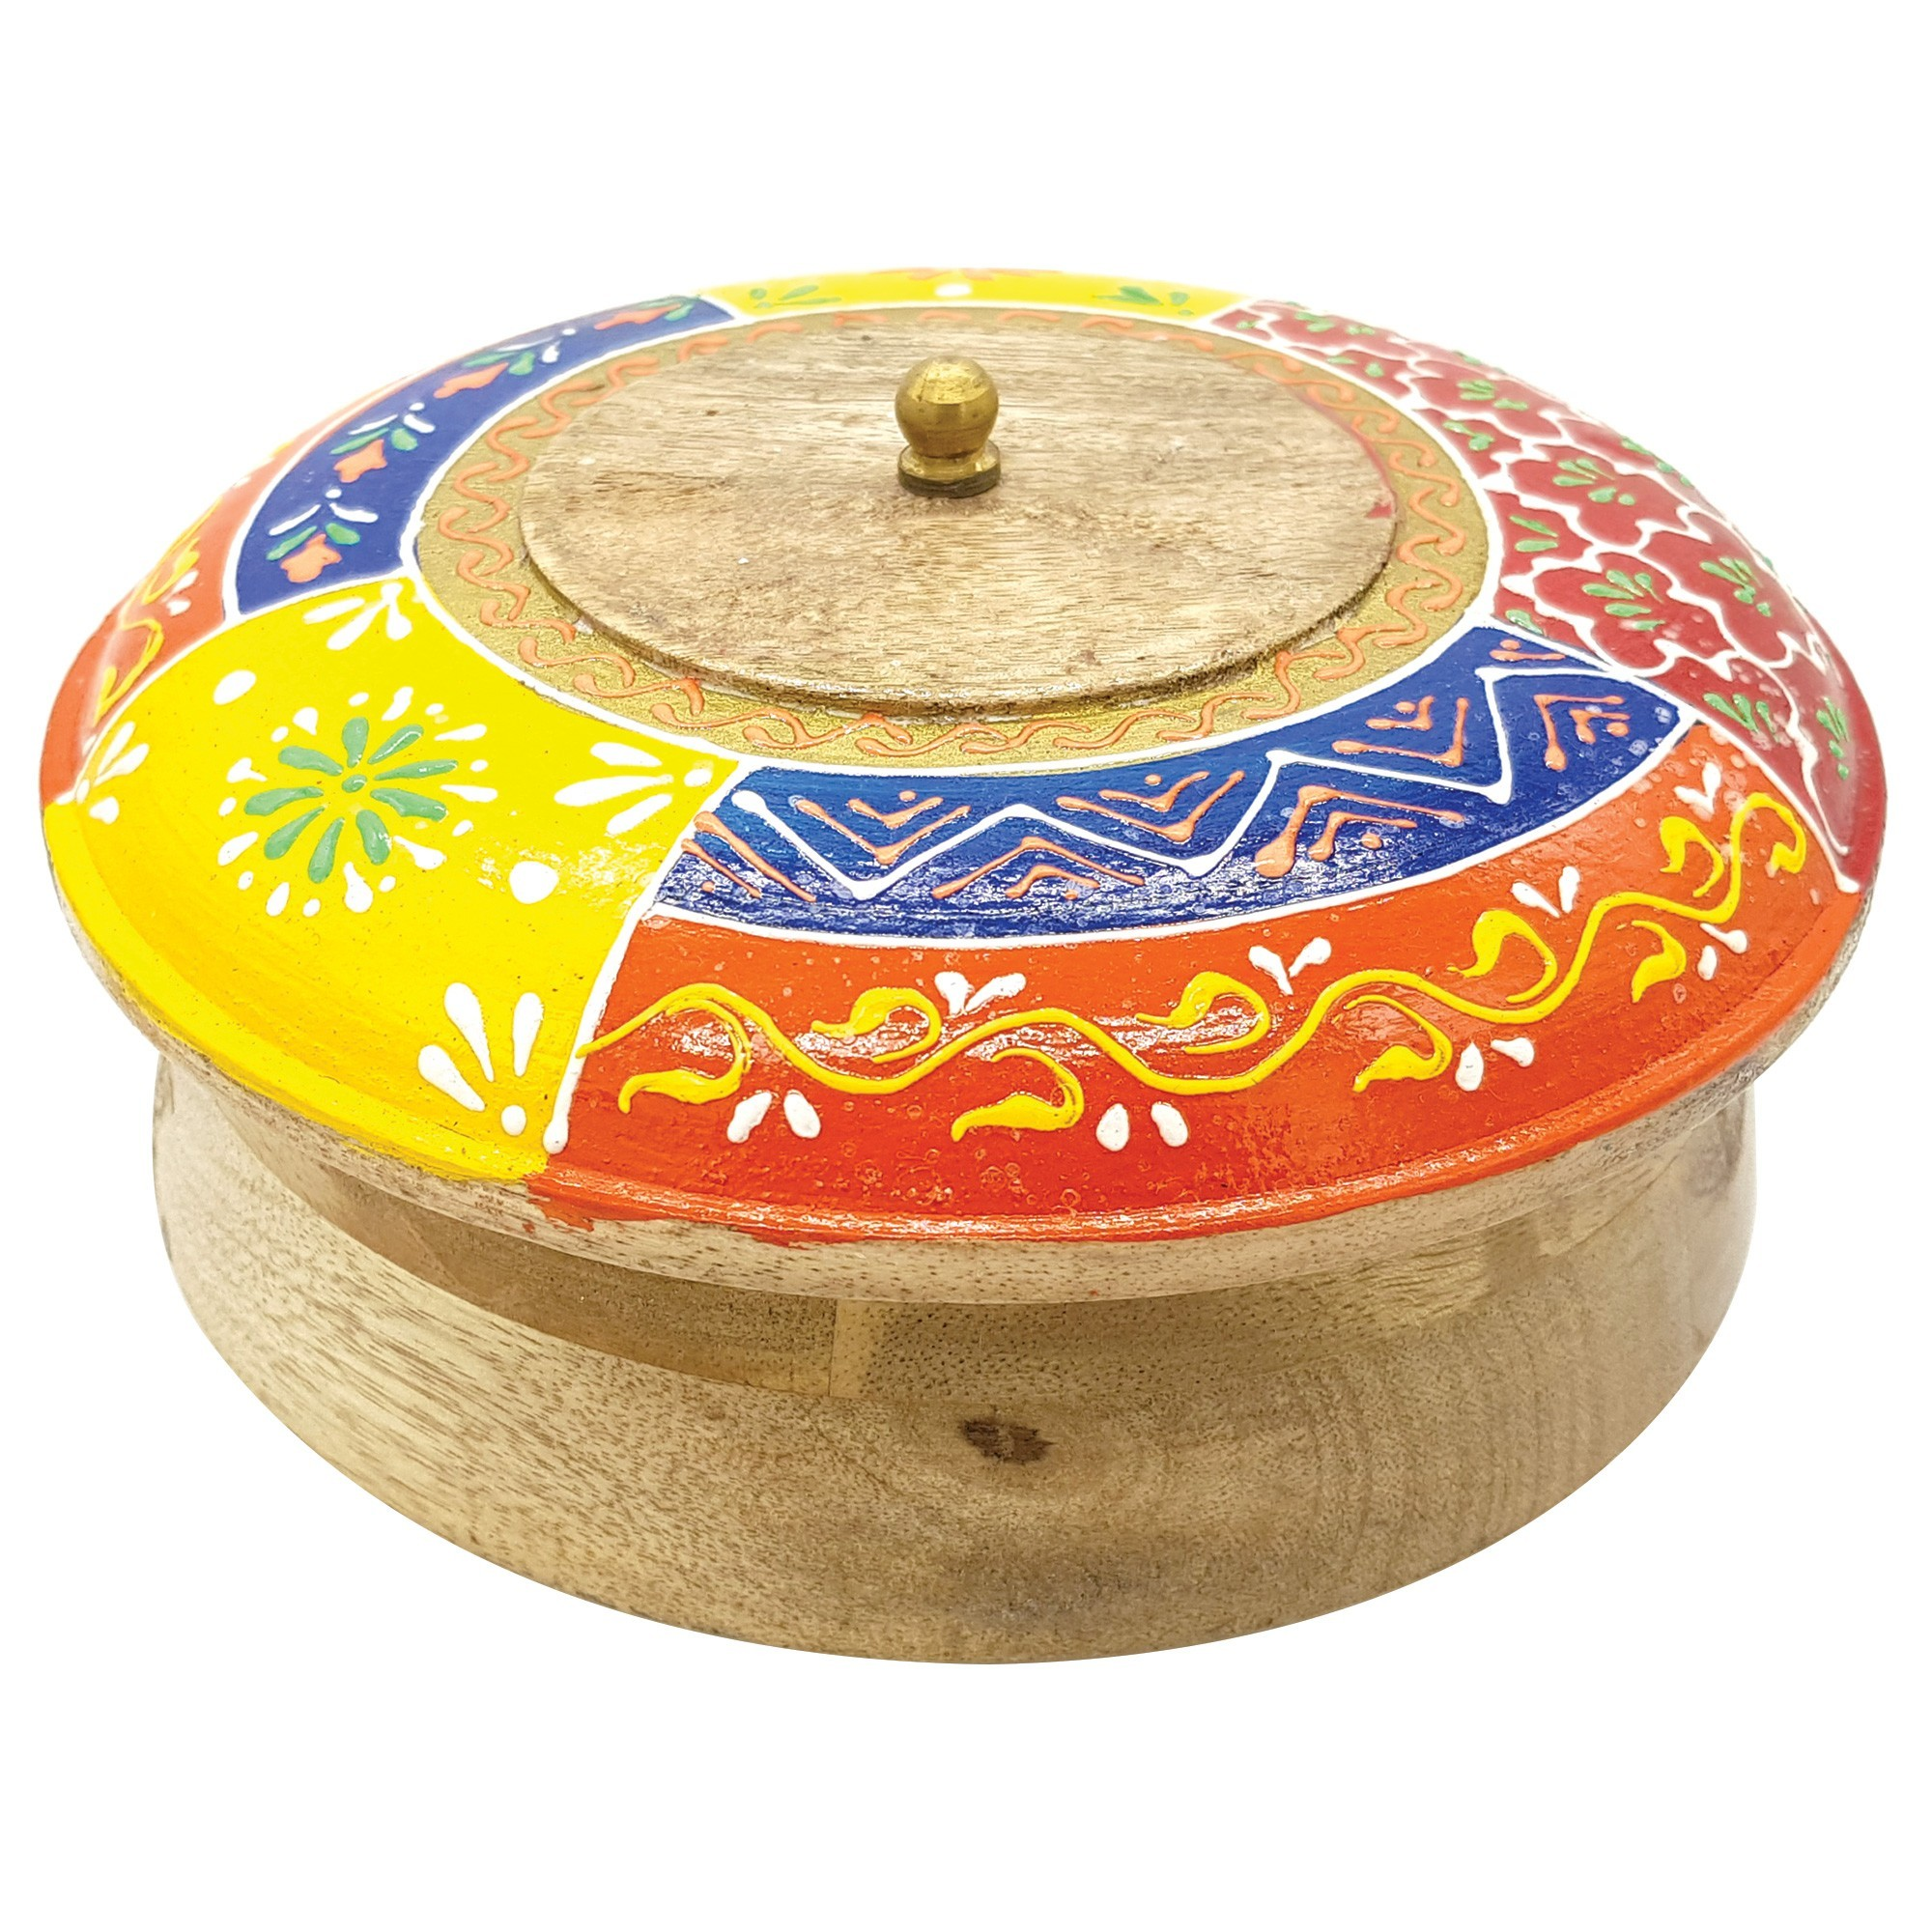 Topsy Painted Wooden Lidded Storage Canister, Large